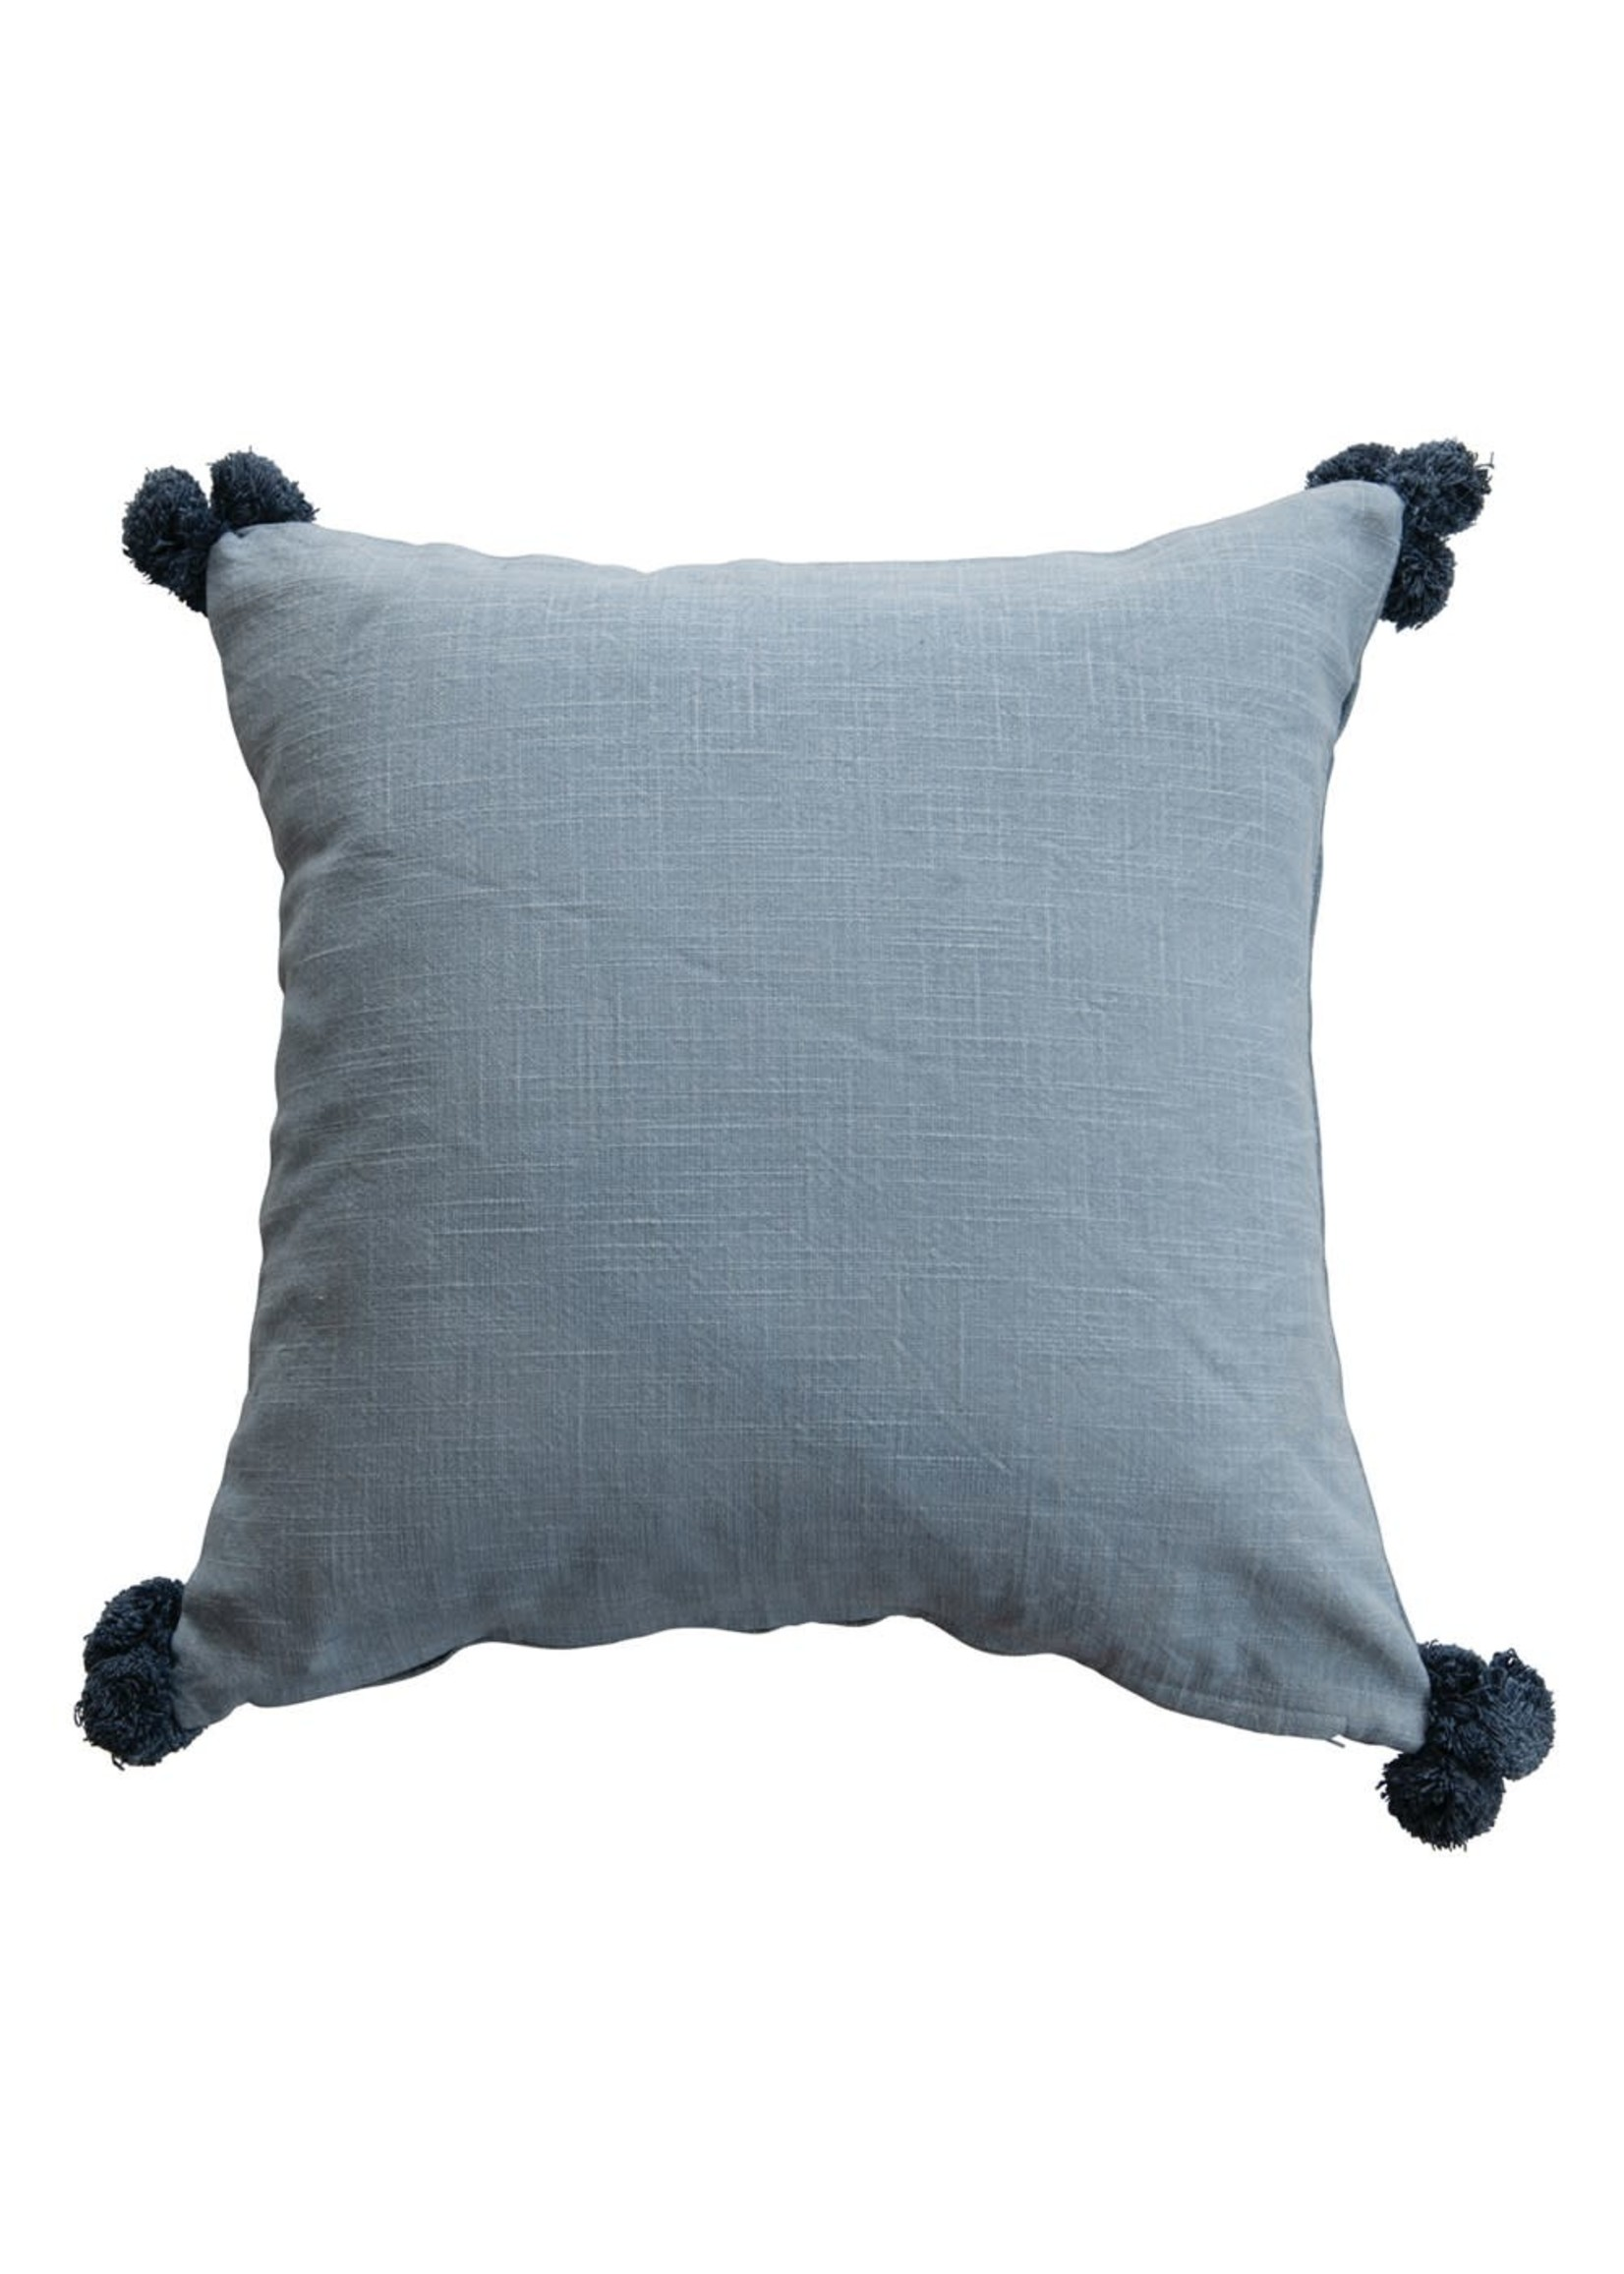 CREATIVE CO-OP BLUE THROW PILLOW WITH CHICKEN & POM POMS